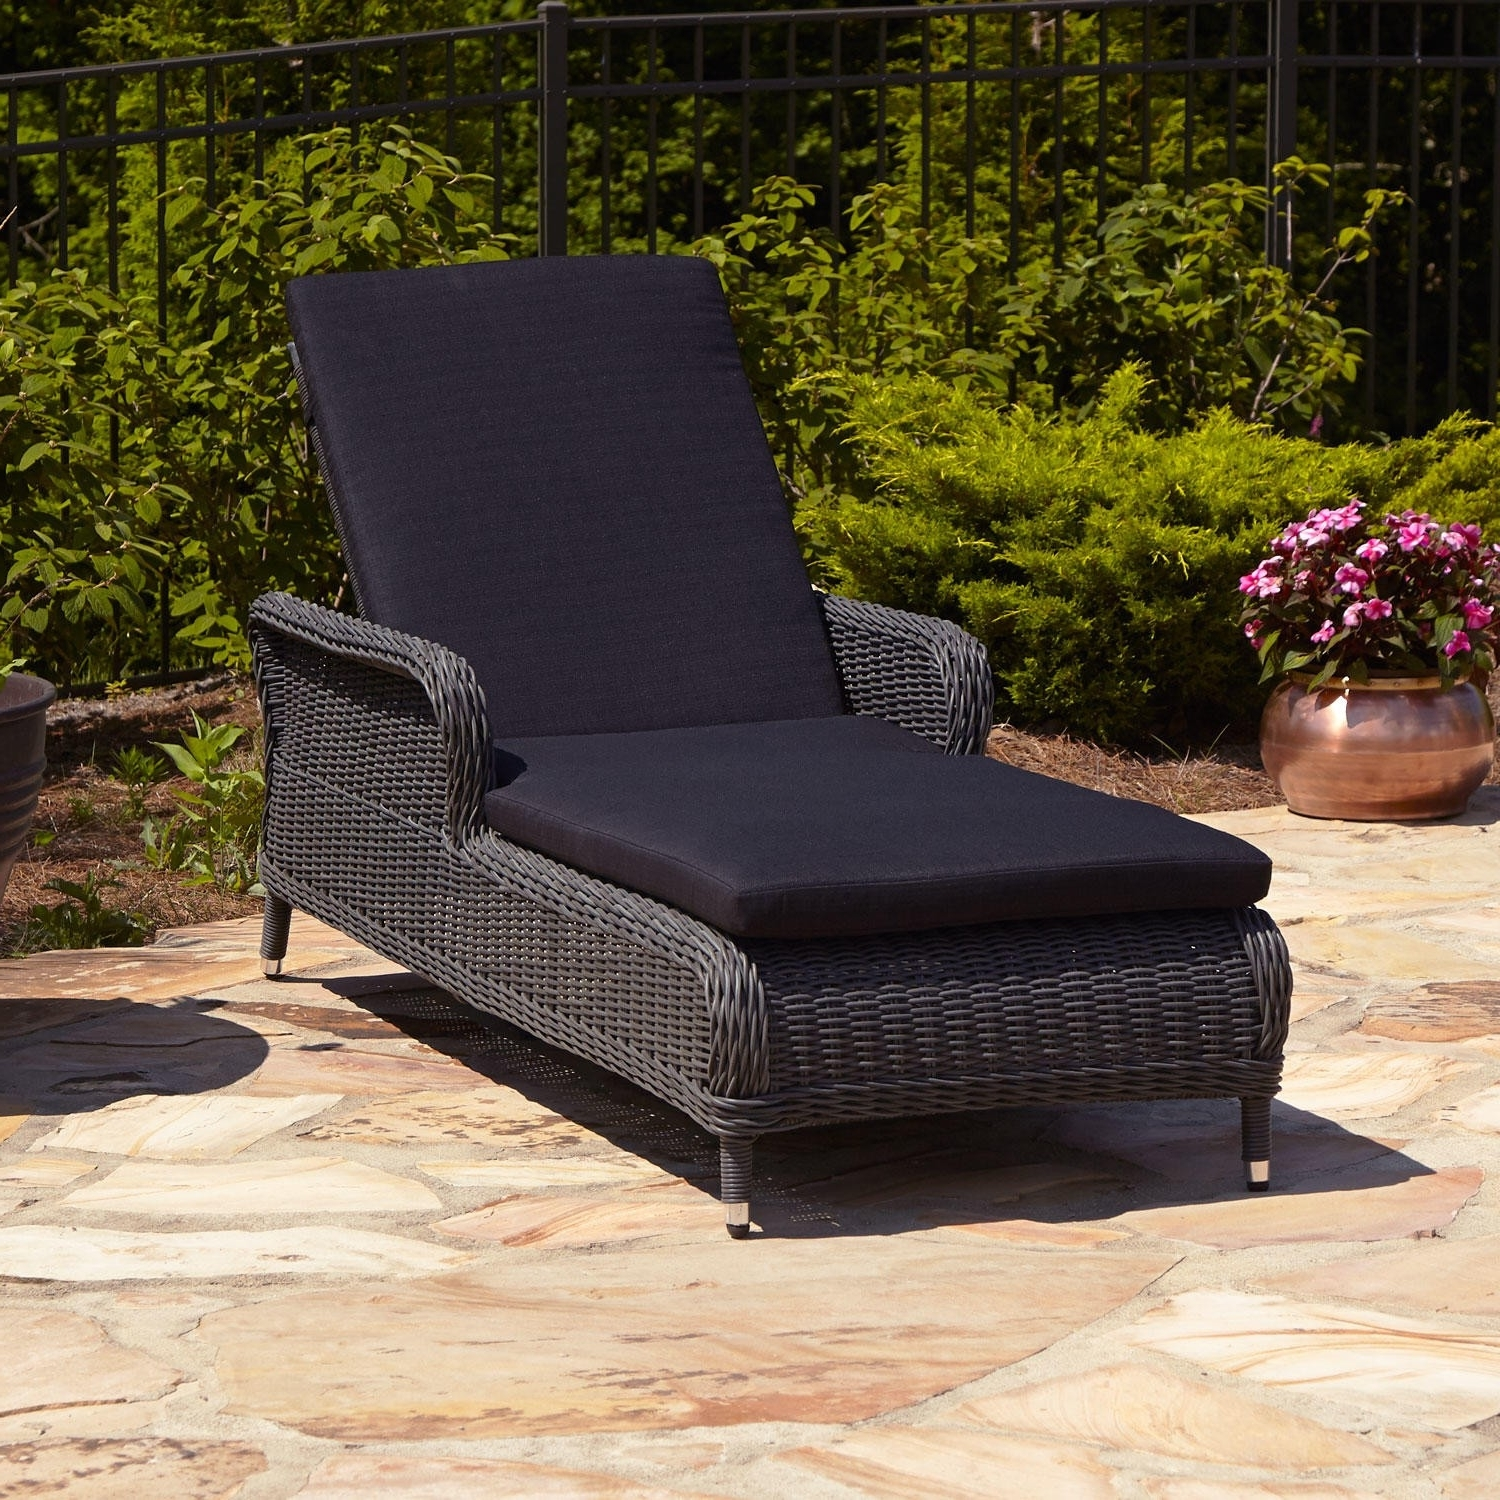 Outdoor Pool Furniture Chaise Lounges Inside Well Known Remarkable Wicker Chaise Lounge Chair Gray Patio Furniture All (View 10 of 15)